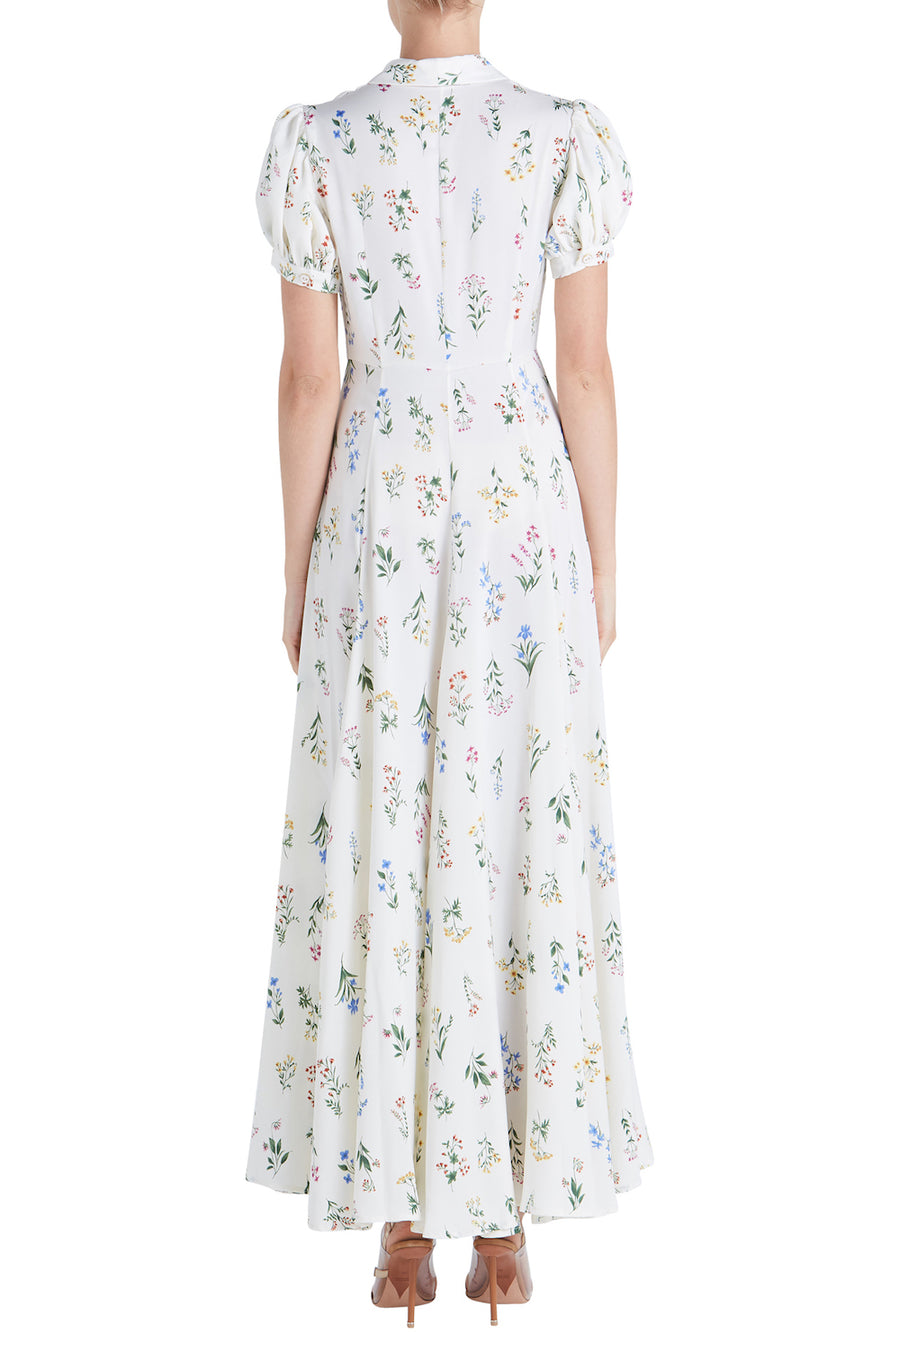 BEL S/S PRINTED MAXI DRESS